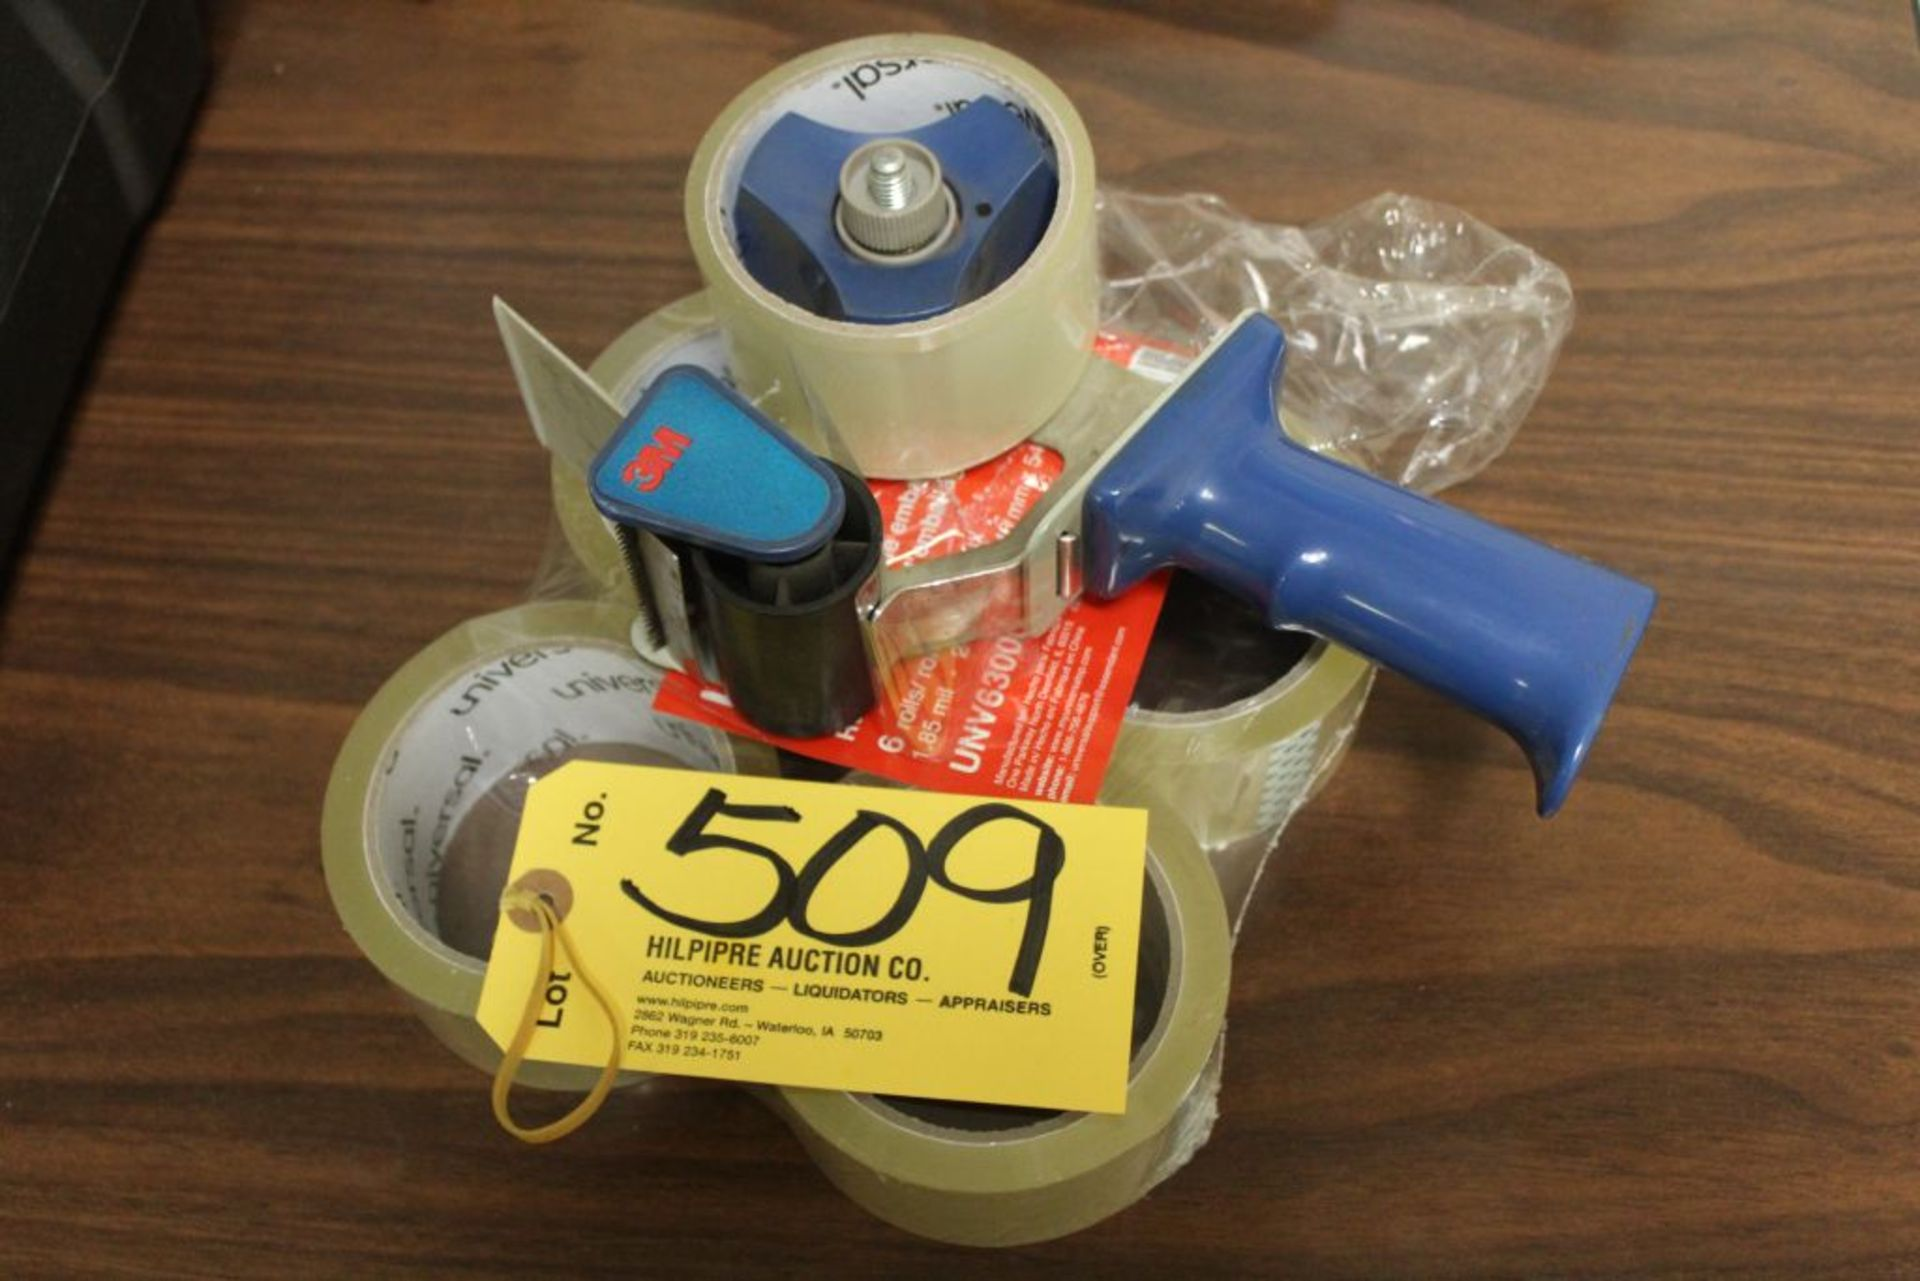 Lot 509 - Box tape with dispenser.